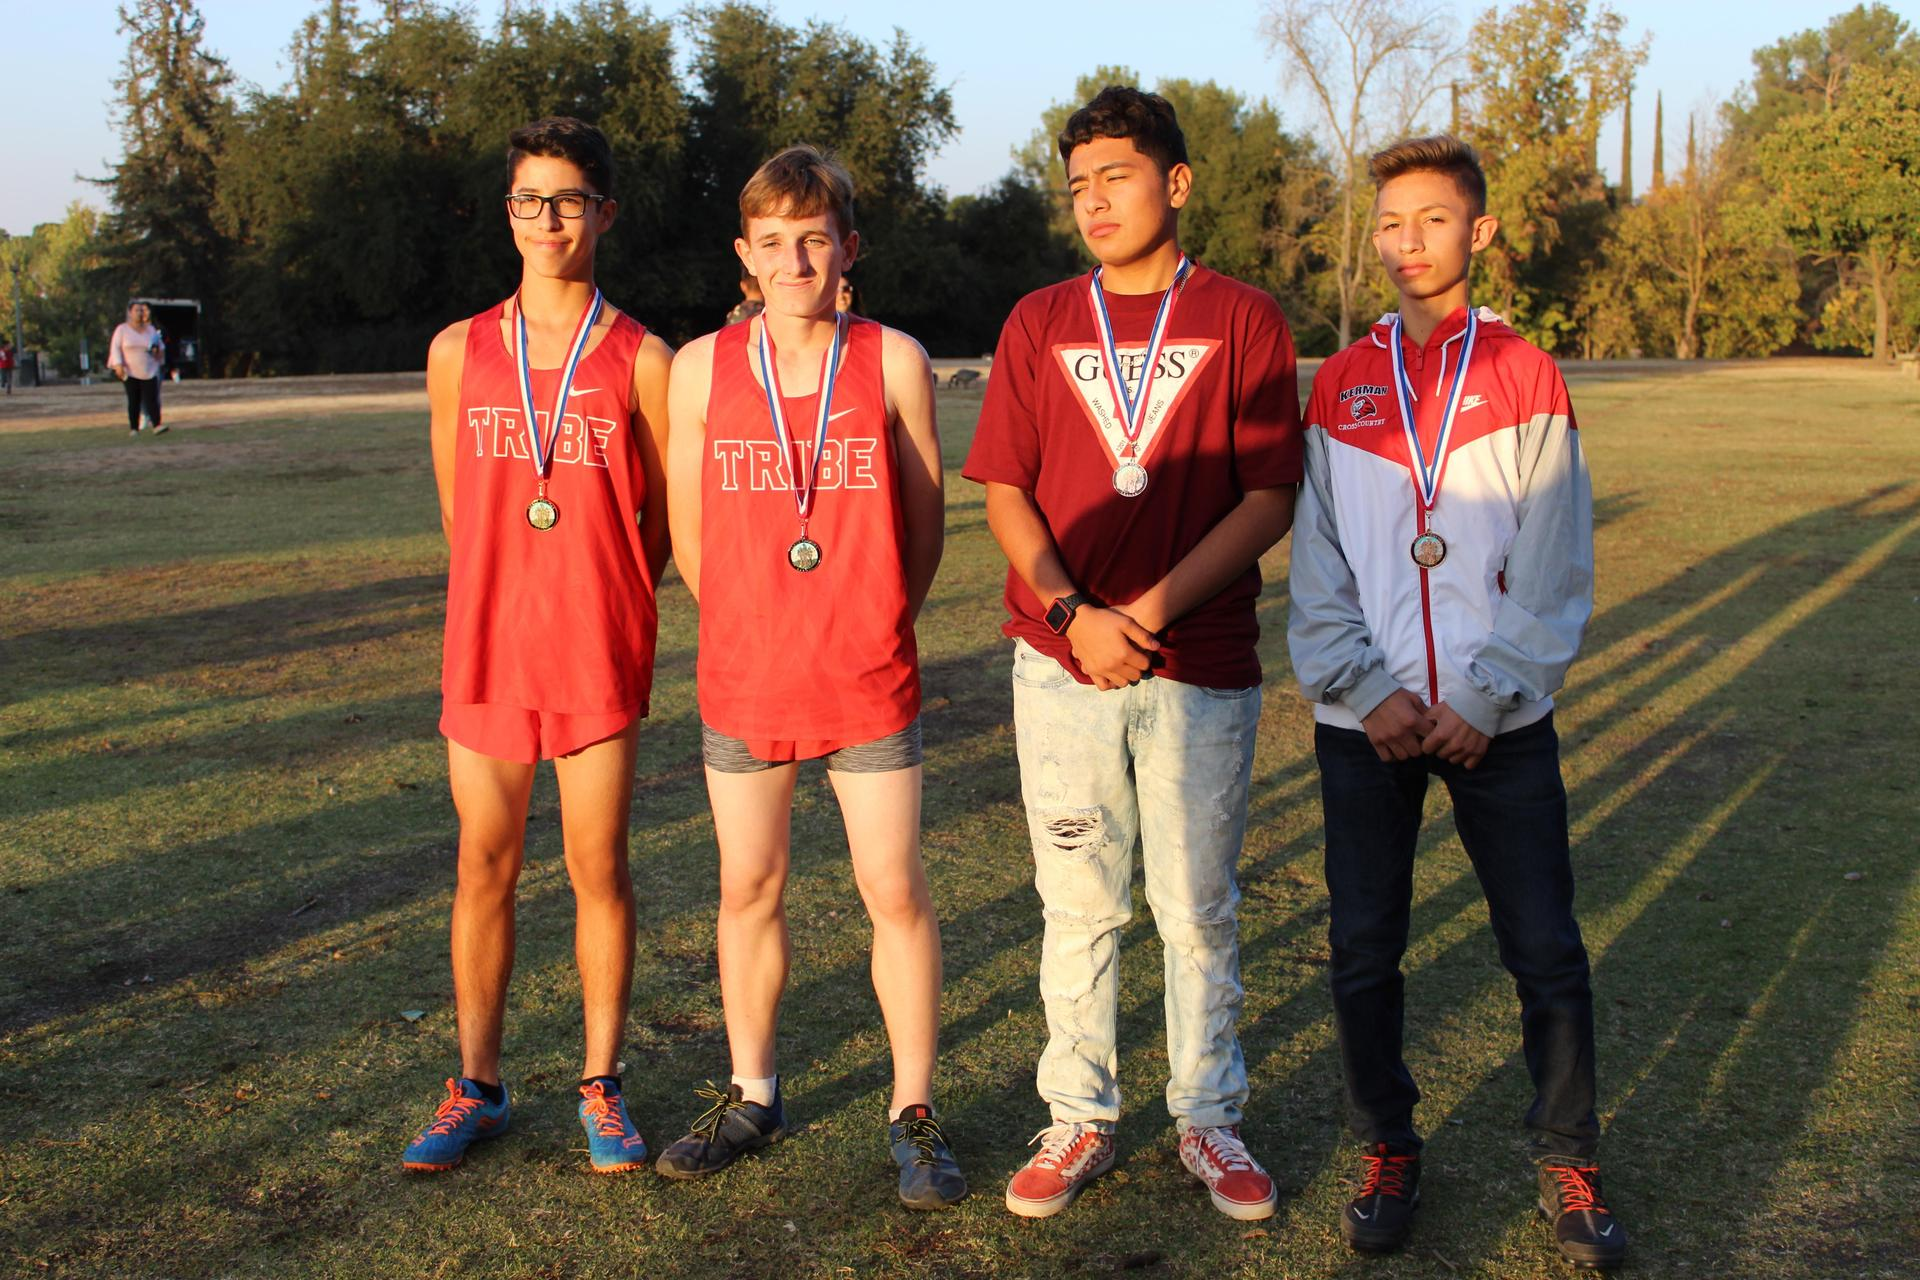 JV Boys winners pose with their medals.